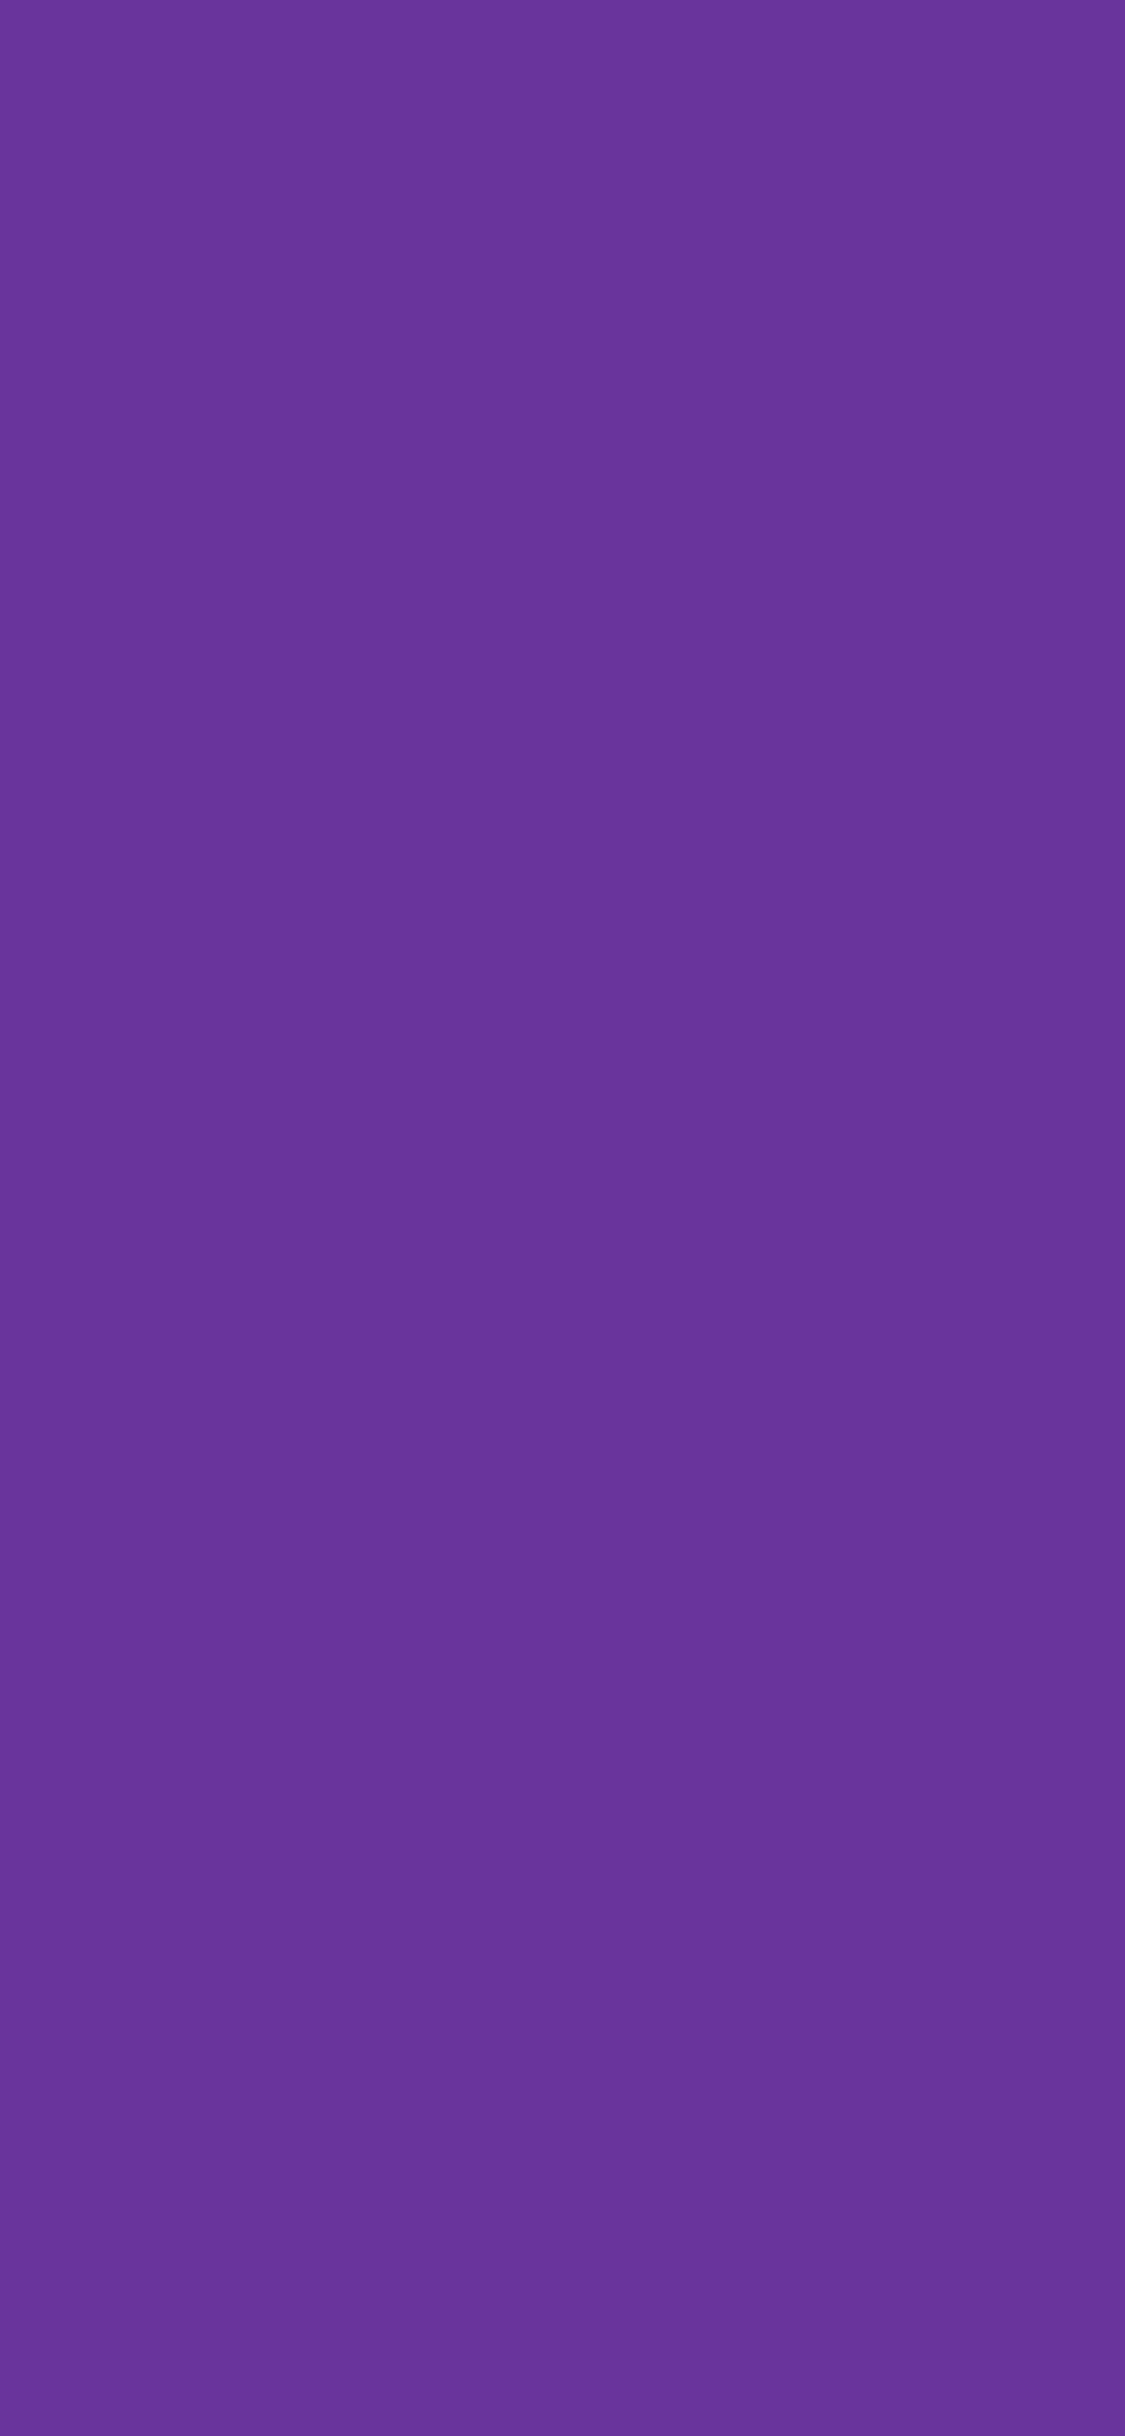 1125x2436 Purple Heart Solid Color Background